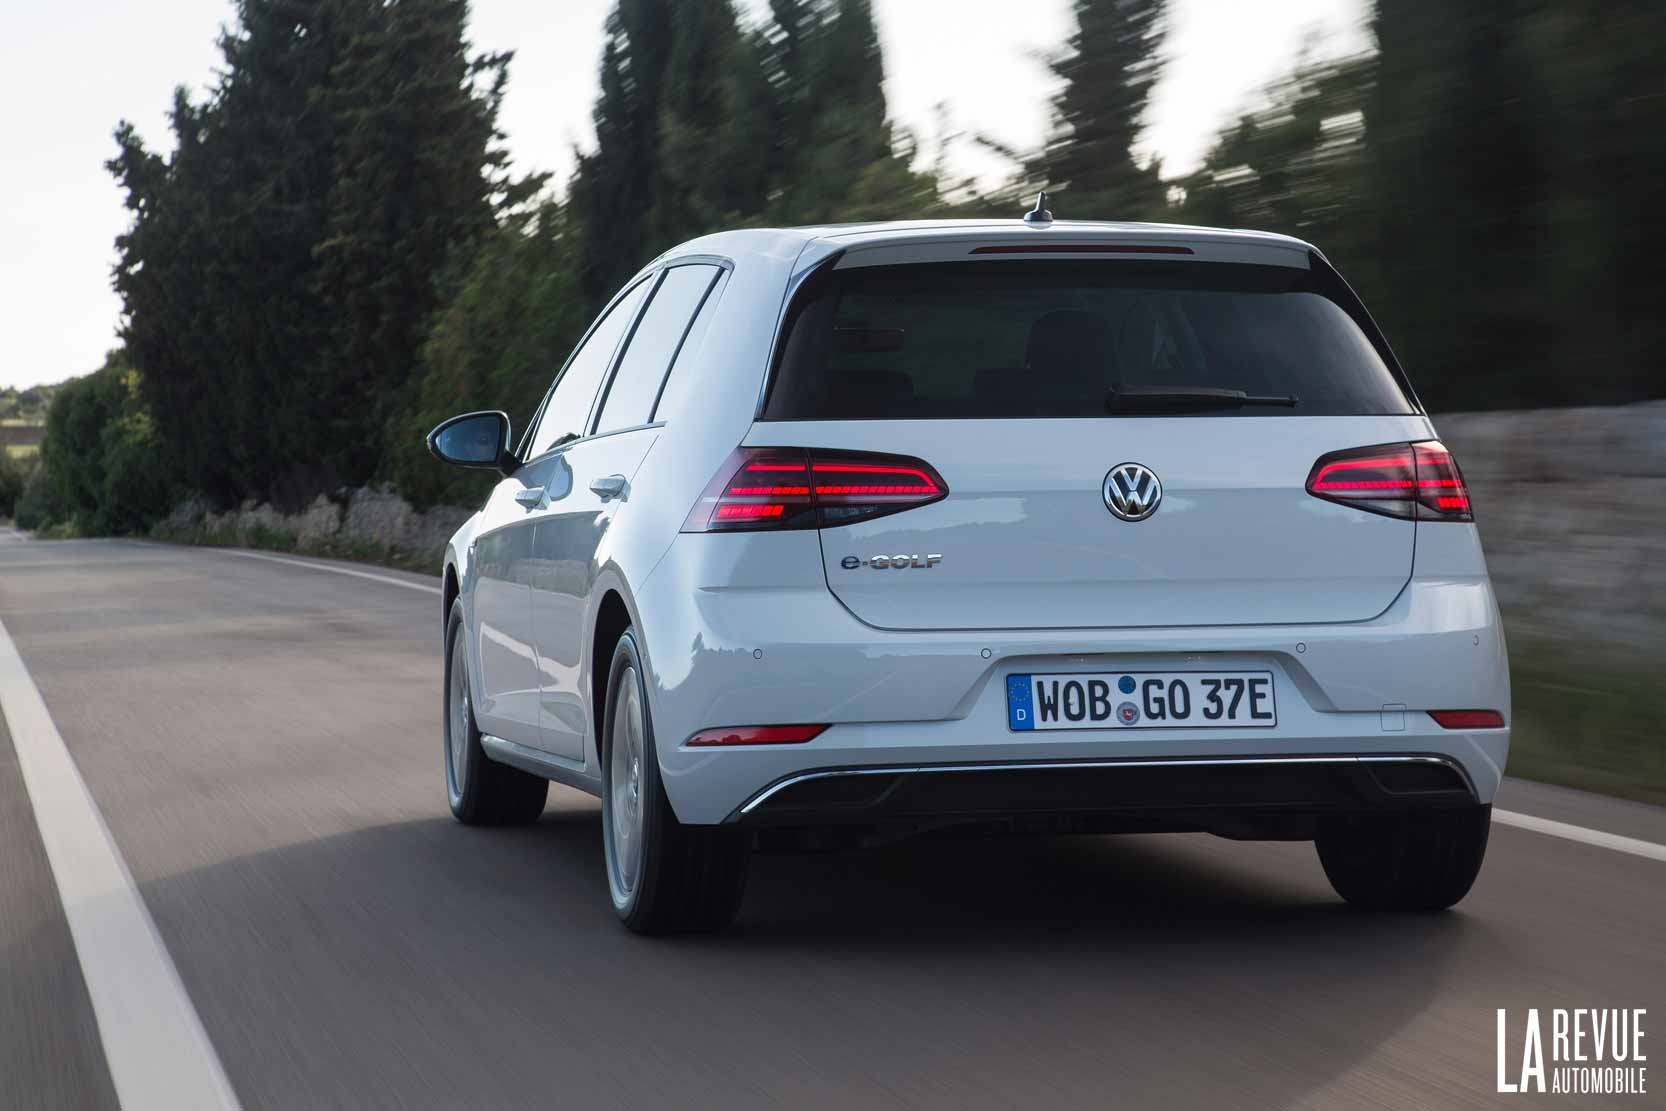 volkswagen golf essai volkswagen e golf le couple sans le bruit gr ce l 39 lectricit. Black Bedroom Furniture Sets. Home Design Ideas